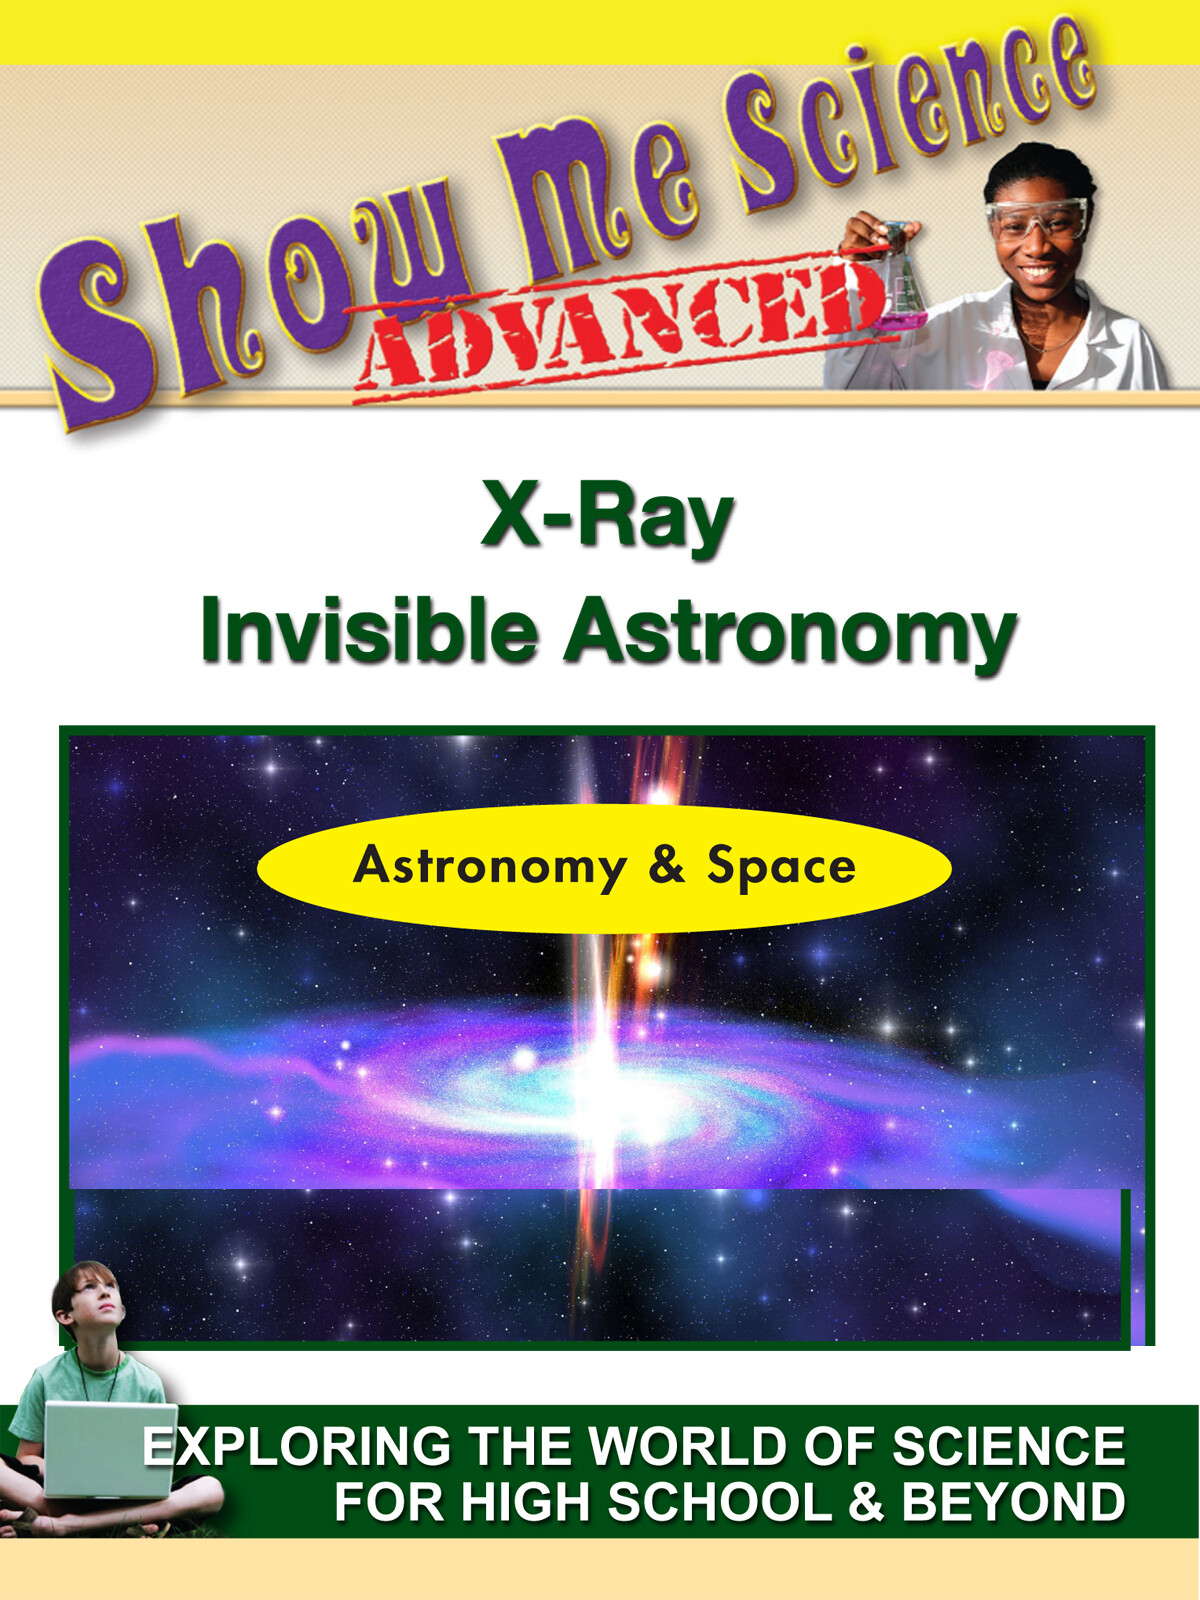 K4618 - Astronomy & Space  XRay Invisible Astronomy